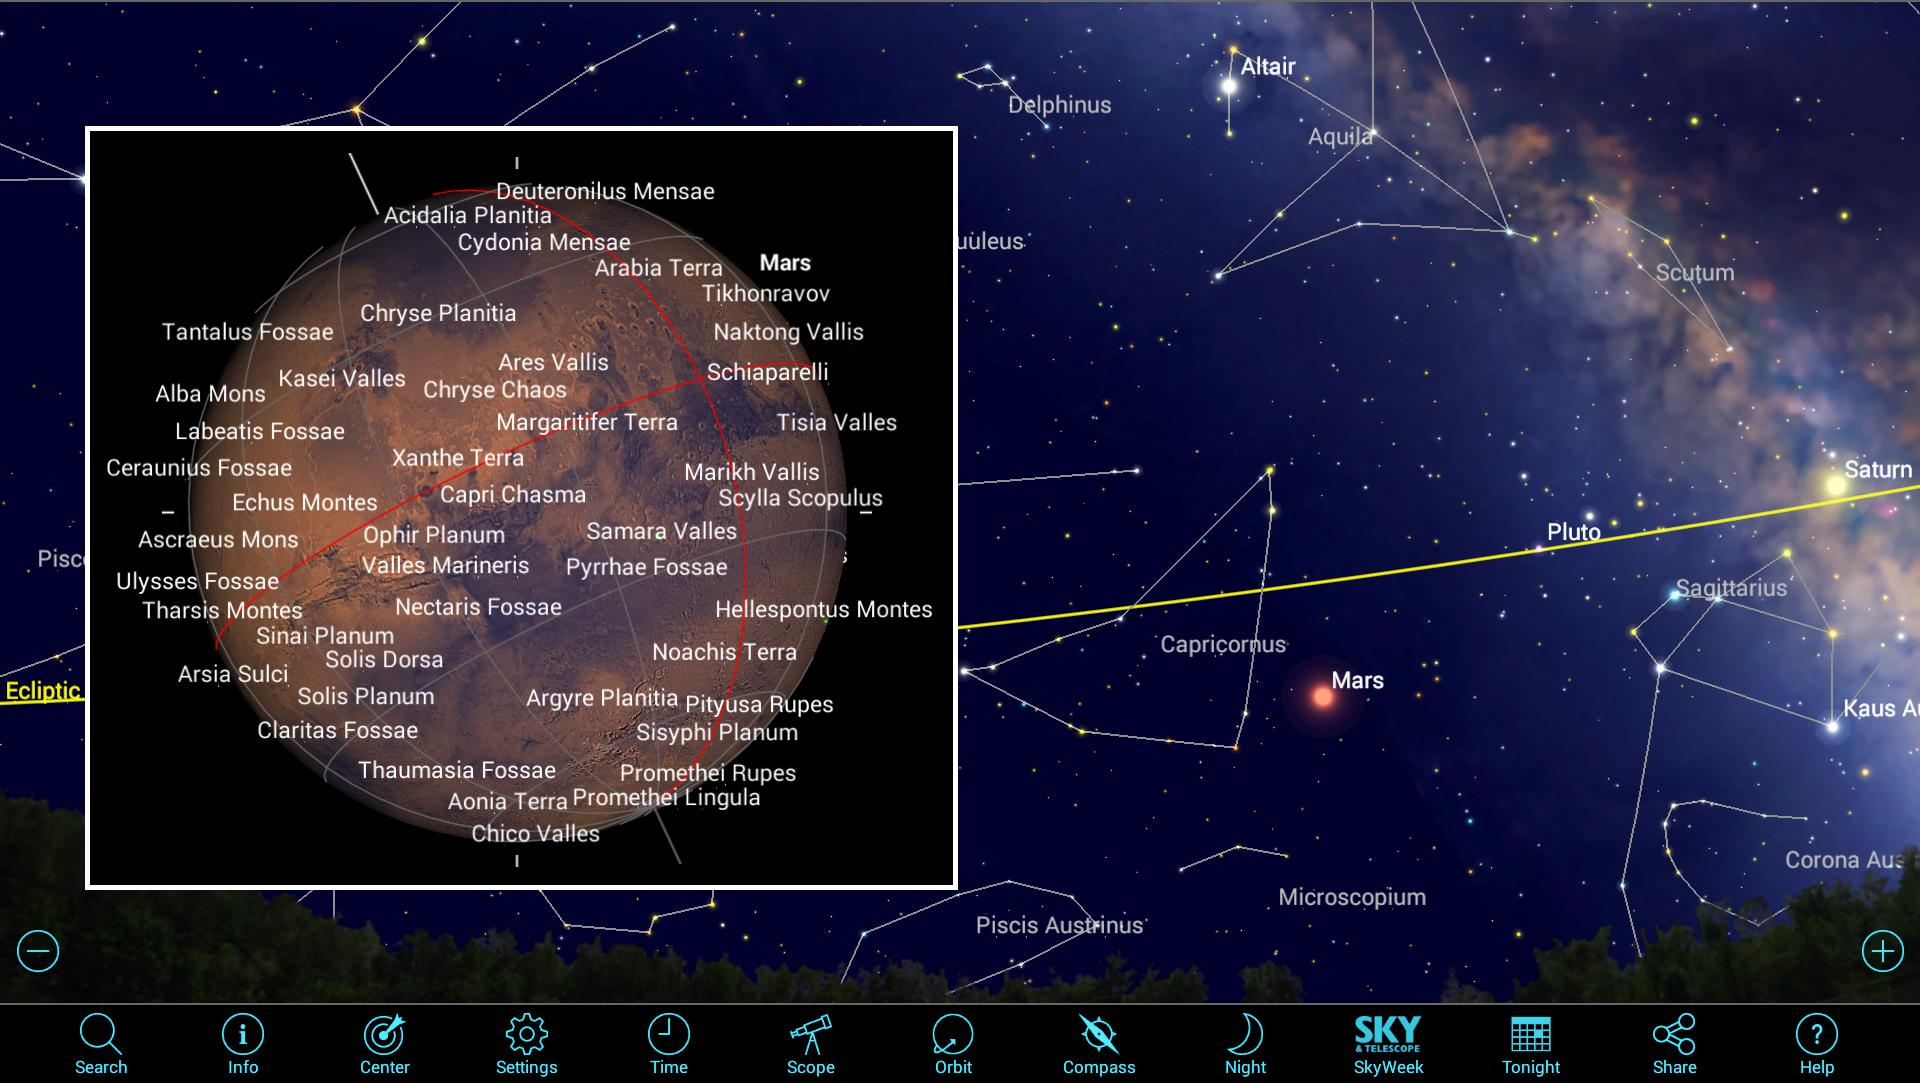 Previewing 2018s Year of Spectacular Mars Using Mobile Apps